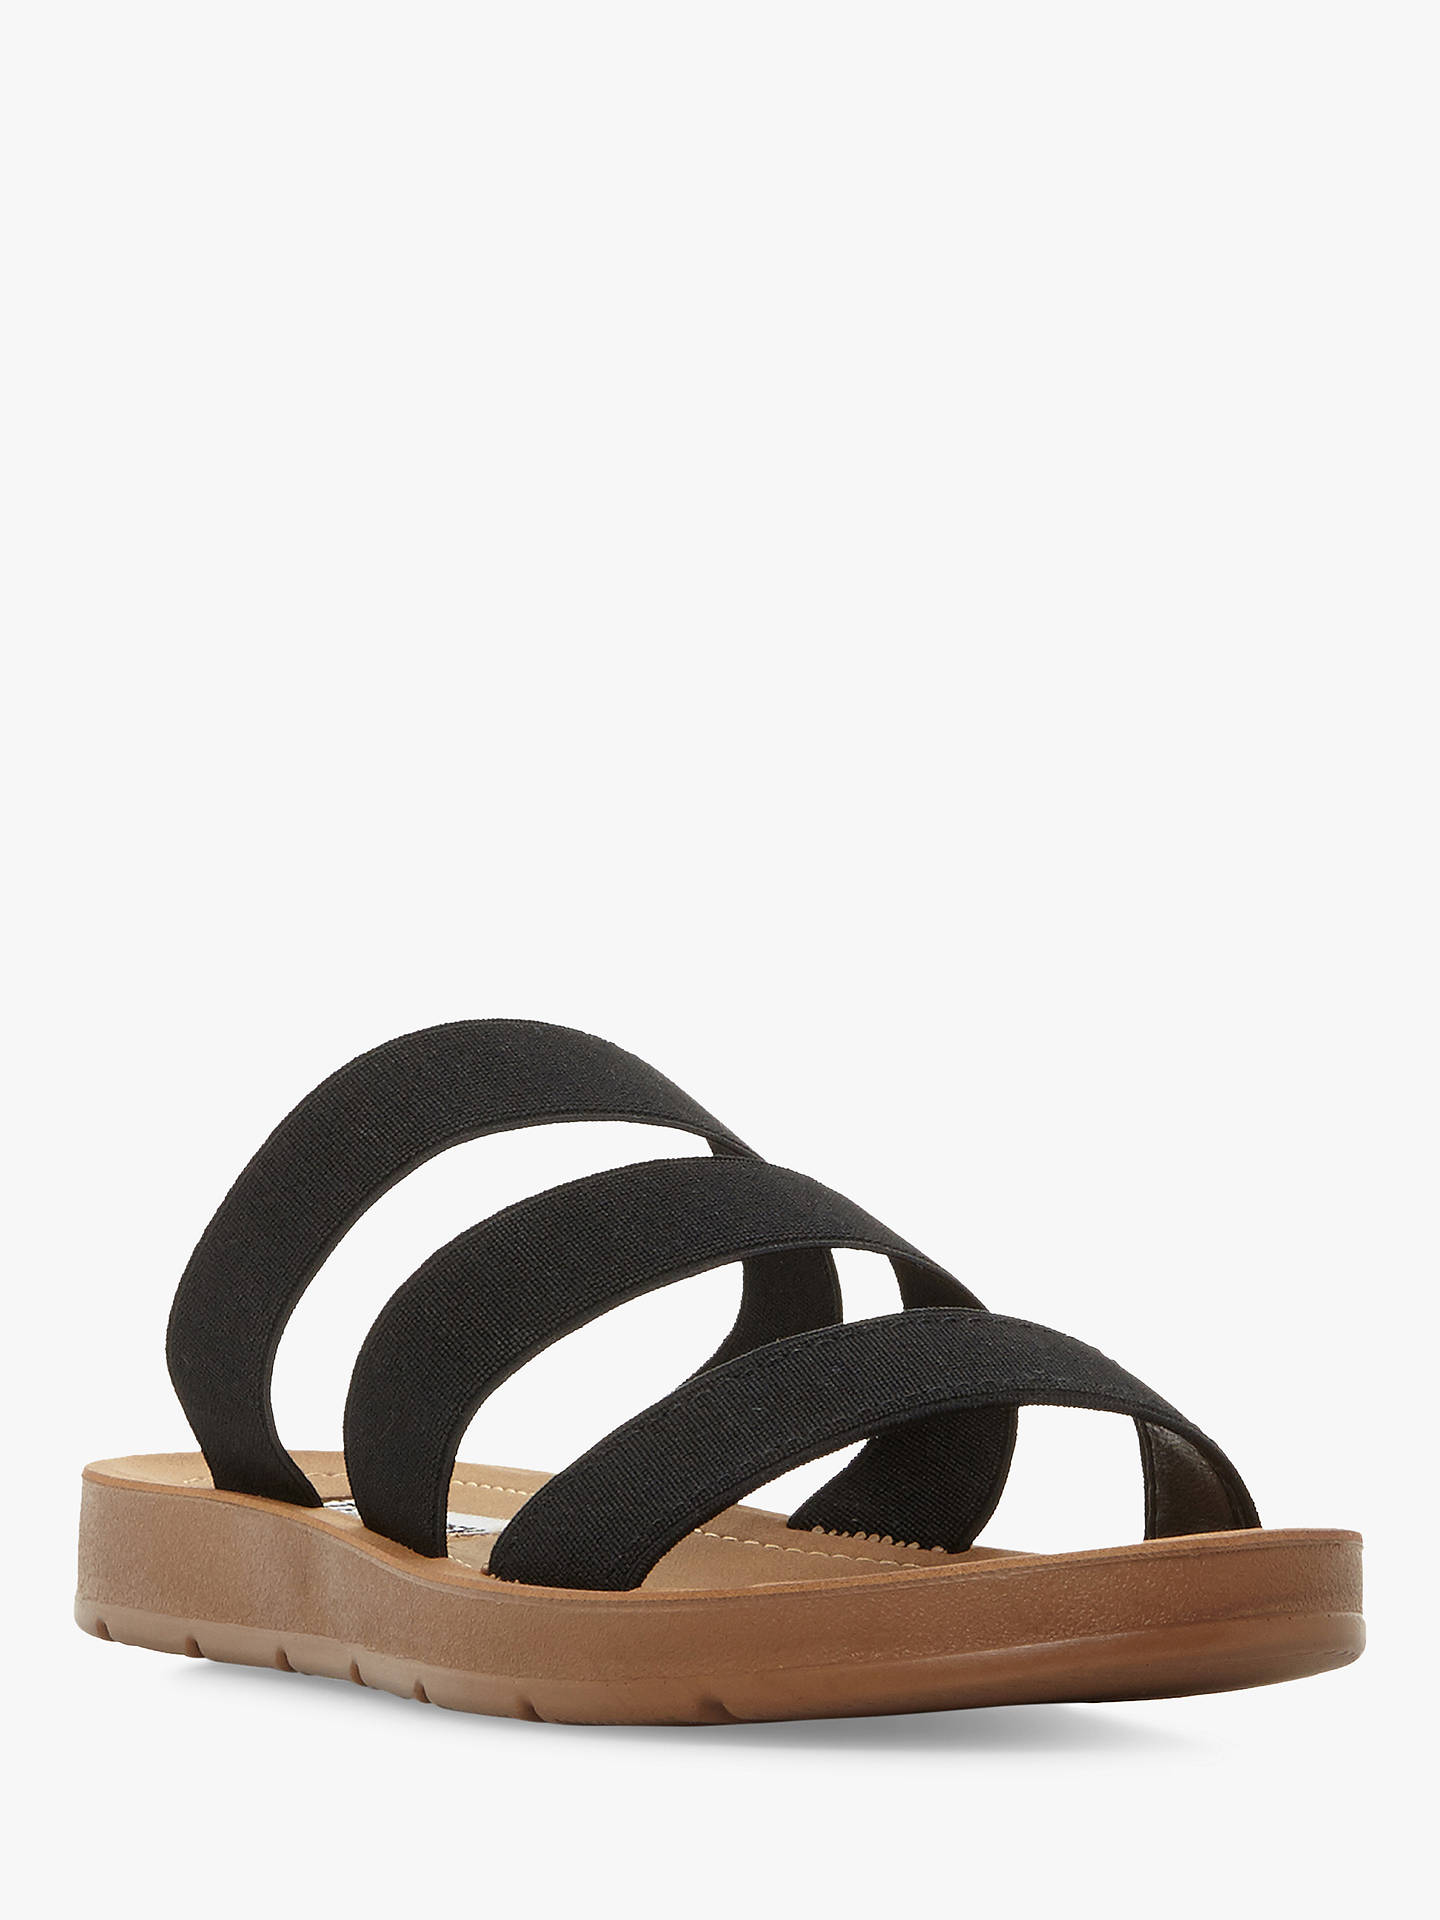 ed4632df327d Steve Madden Pascale Slip On Flat Sandals at John Lewis   Partners